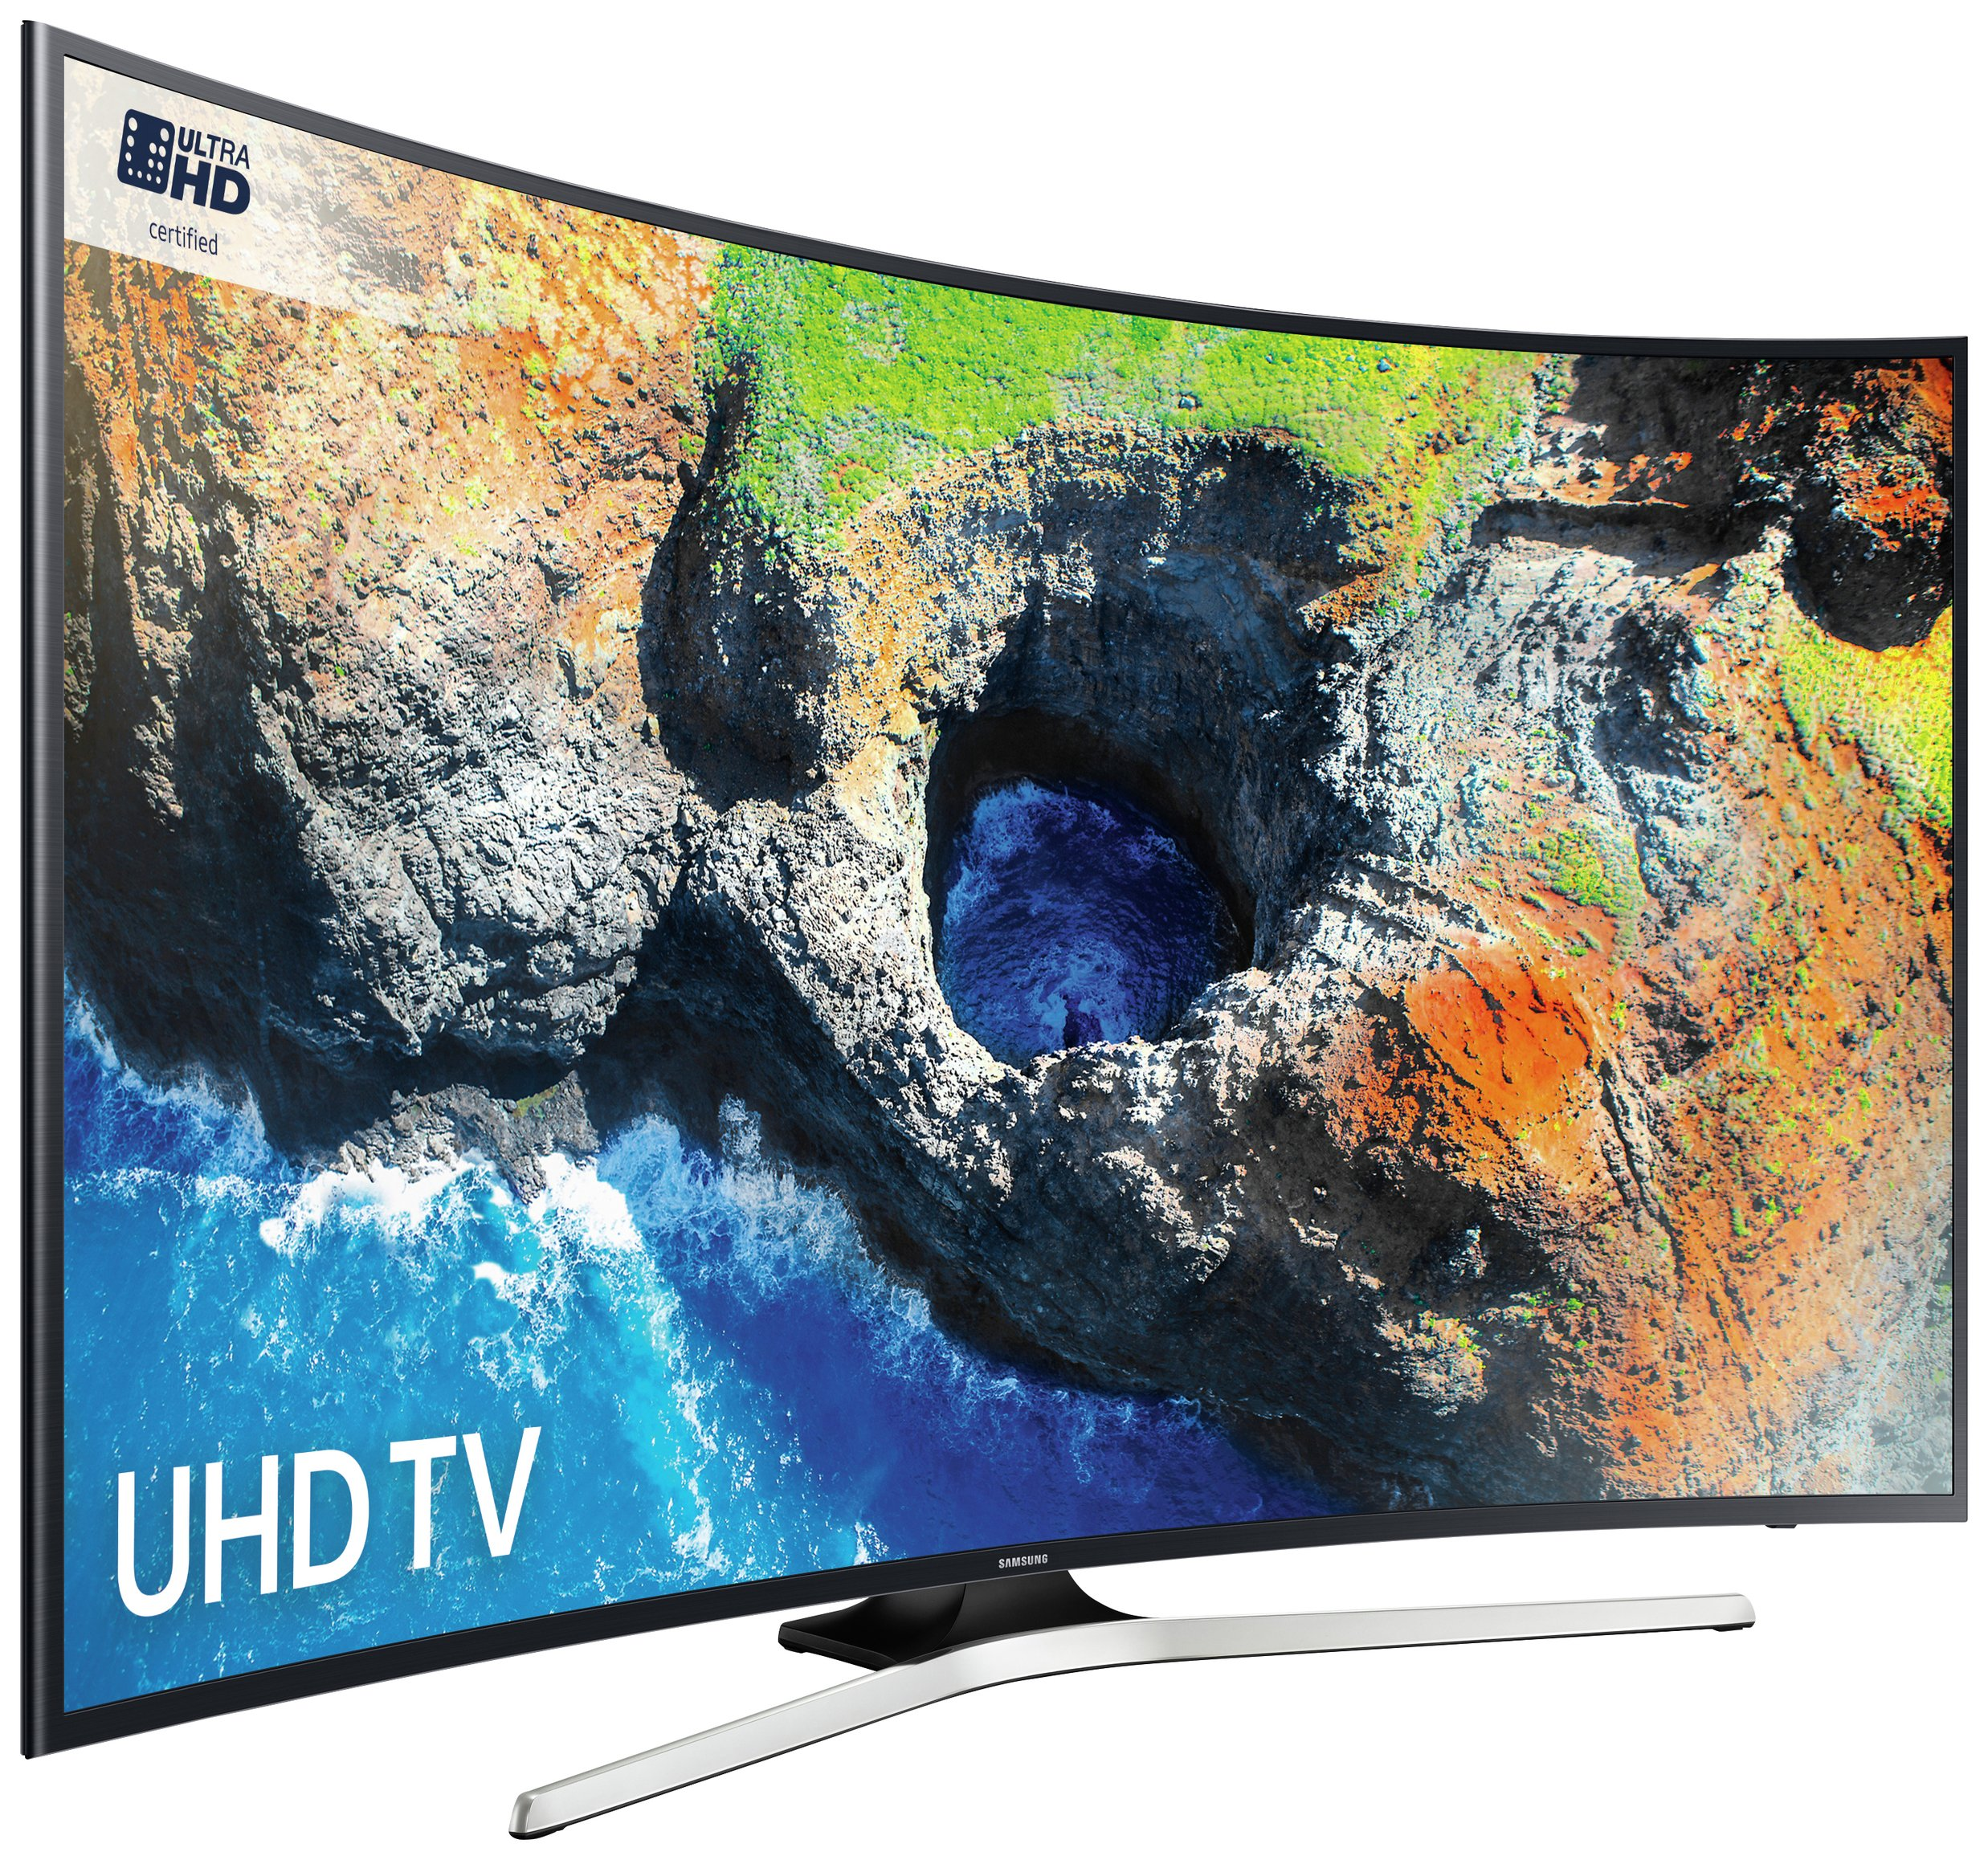 Samsung Samsung MU6220 65 Inch Curved 4K Ultra HD Smart TV with HDR